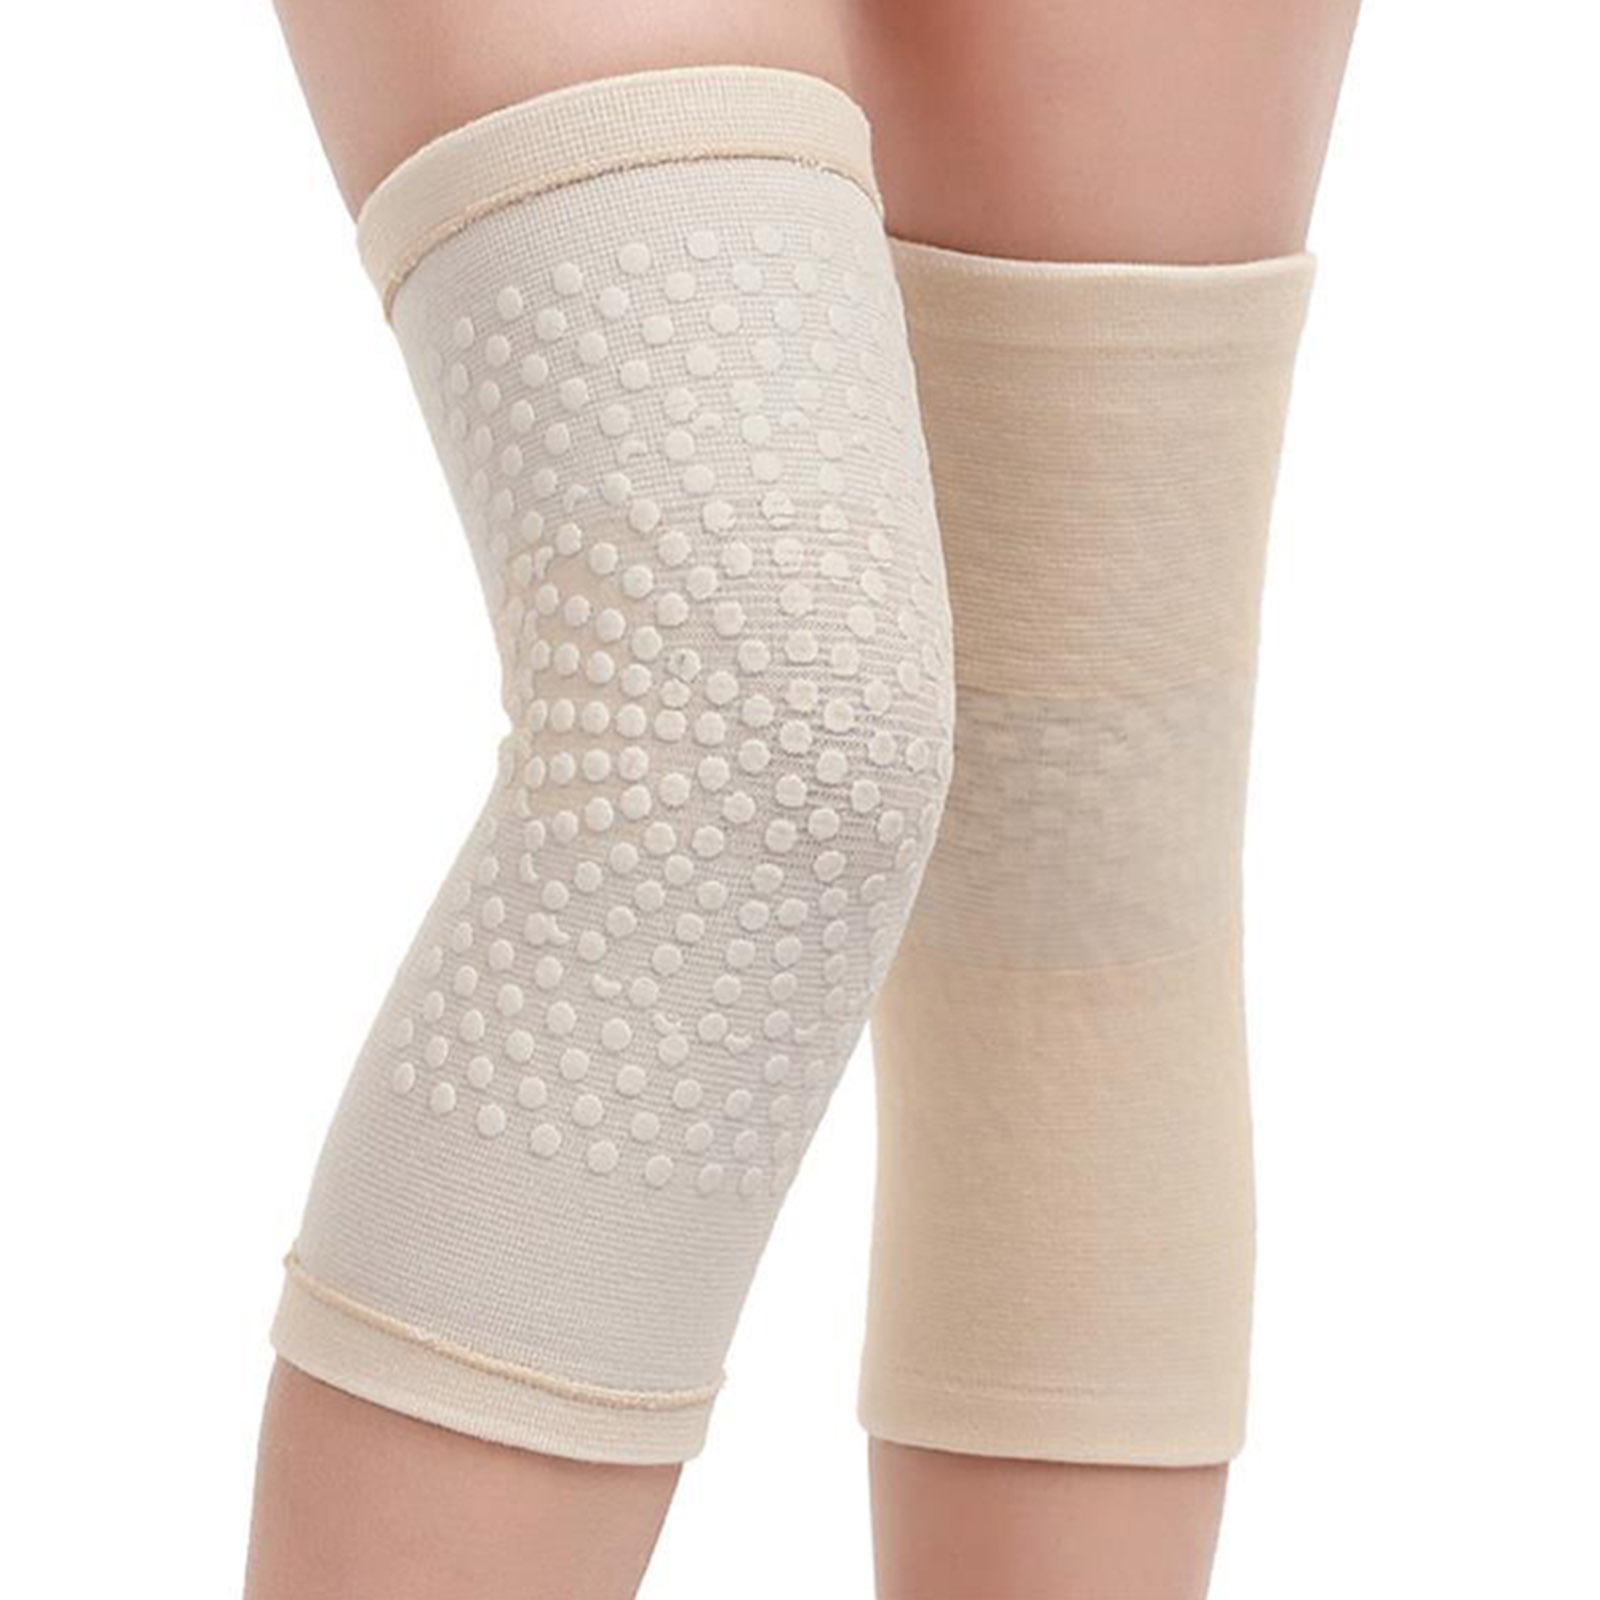 2 pcs Tourmaline Self Heating Knee Pads Warm for Arthritis Joint Pain Reliefs Knee Protection Tools Winter Supplies ZJ55